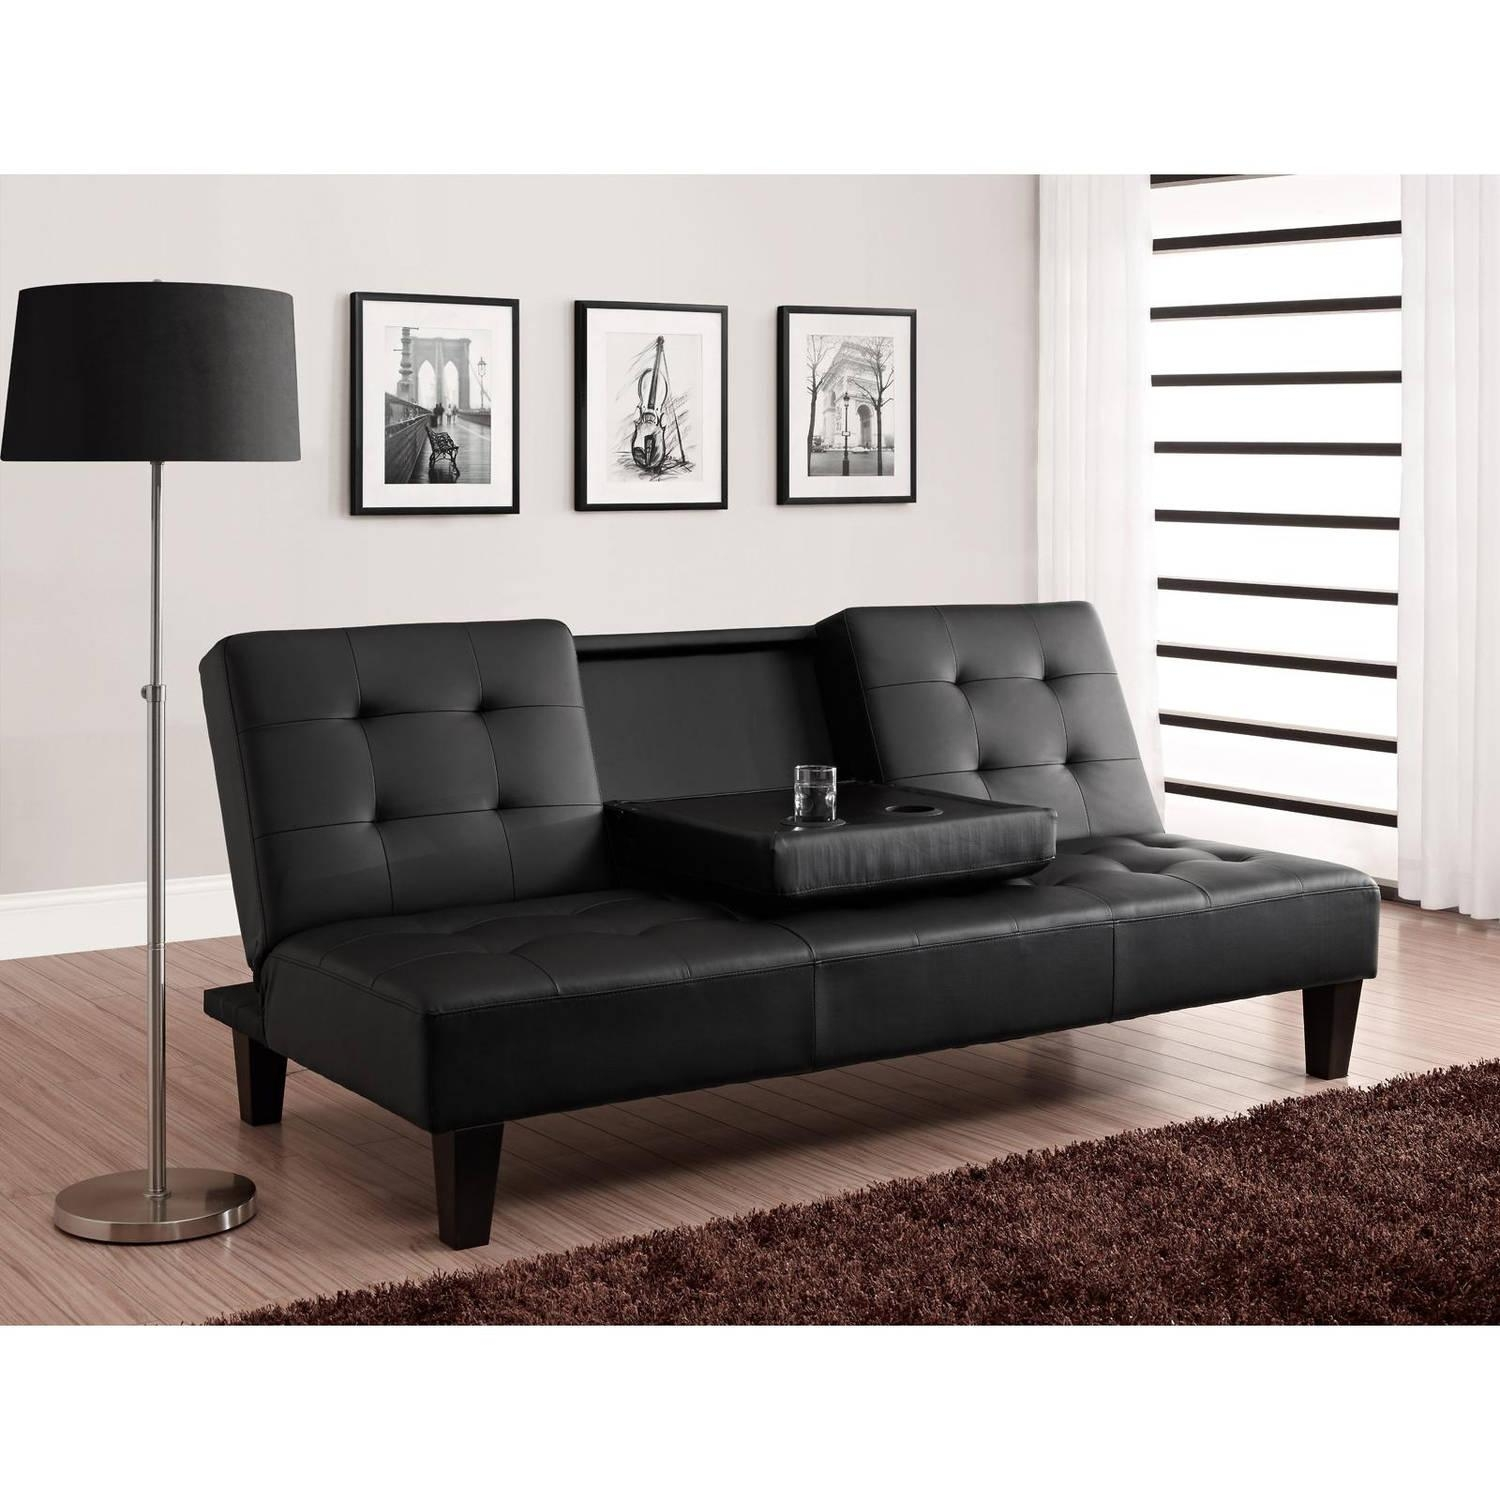 Black Leather Convertible Sofa | Sofa Gallery | Kengire For Black Leather Convertible Sofas (Image 2 of 20)